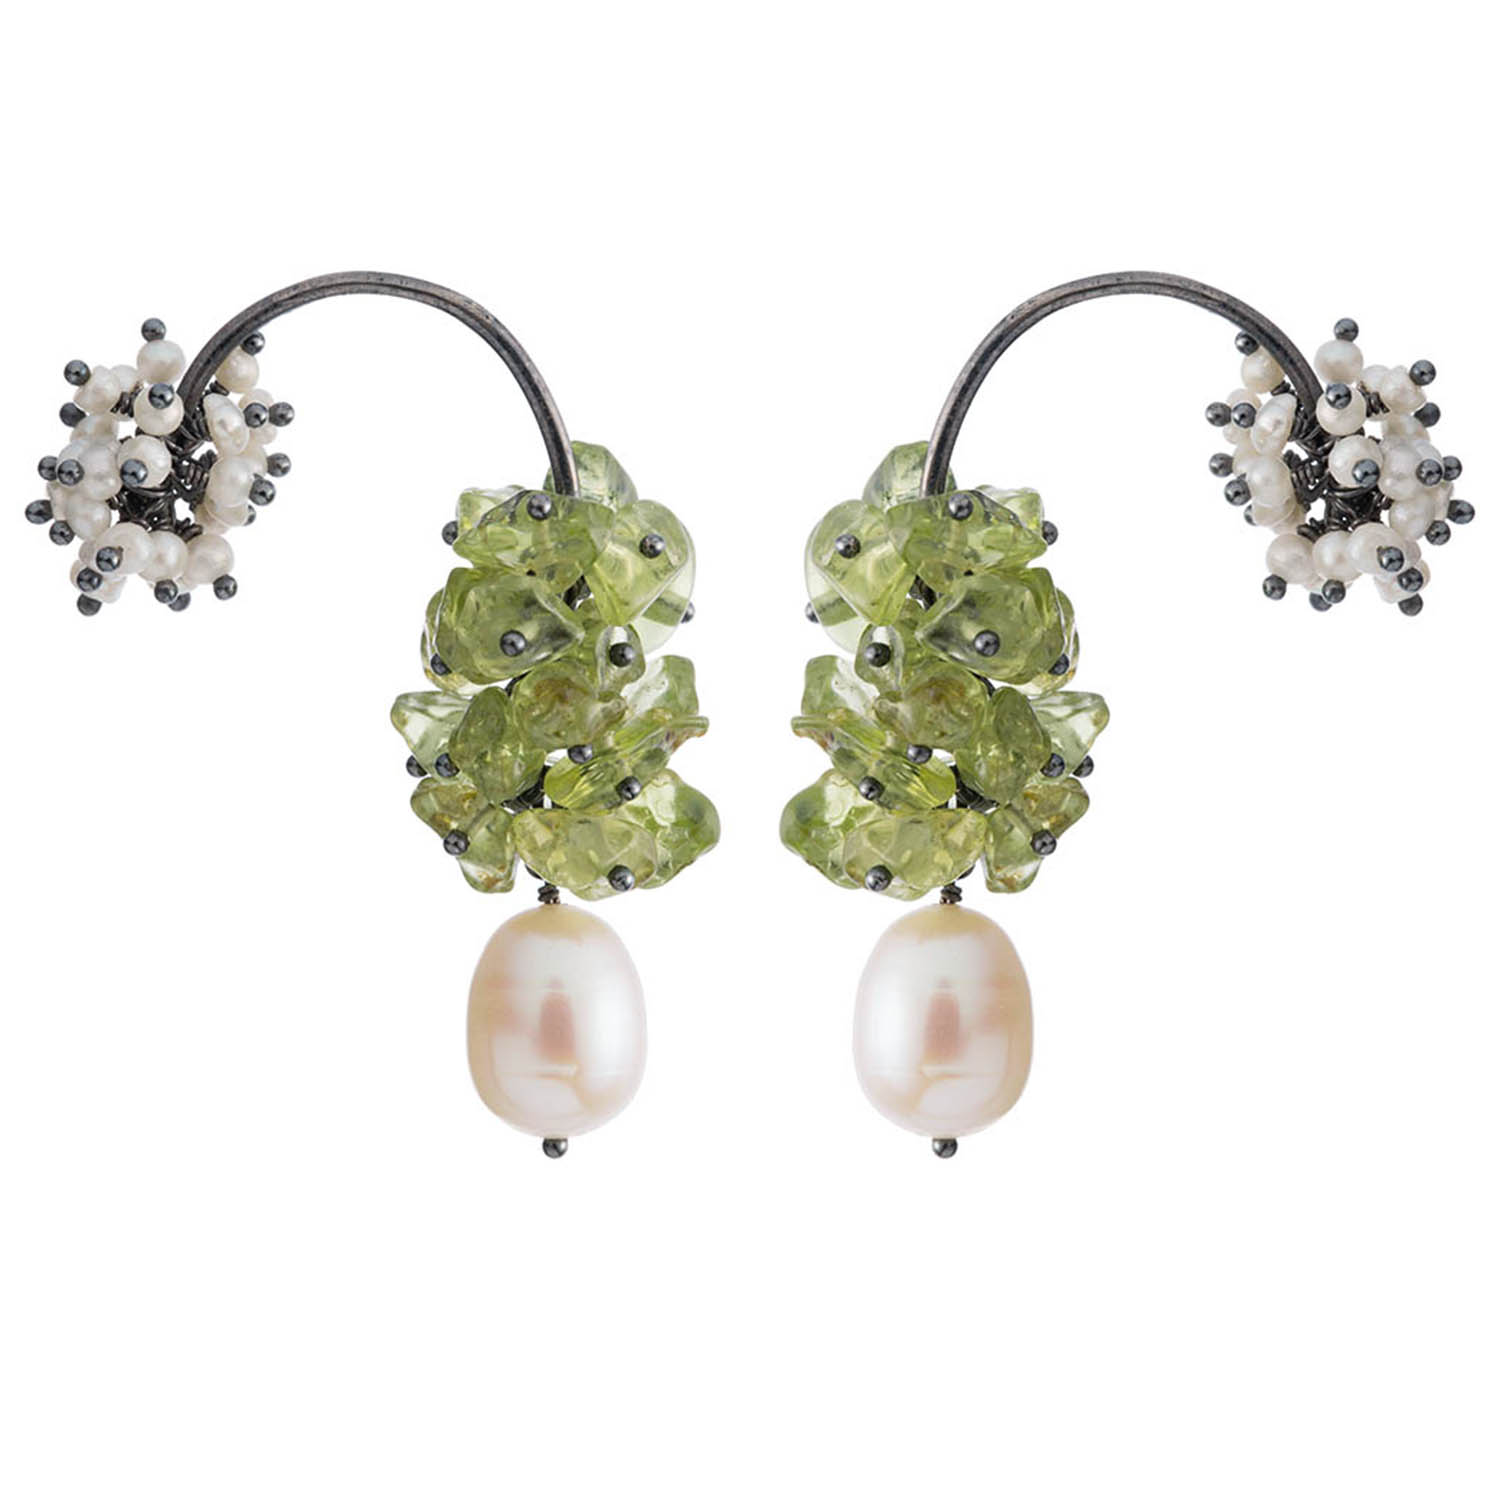 Michelle Pajak-Reynolds Undina Collection Talulah Earrings